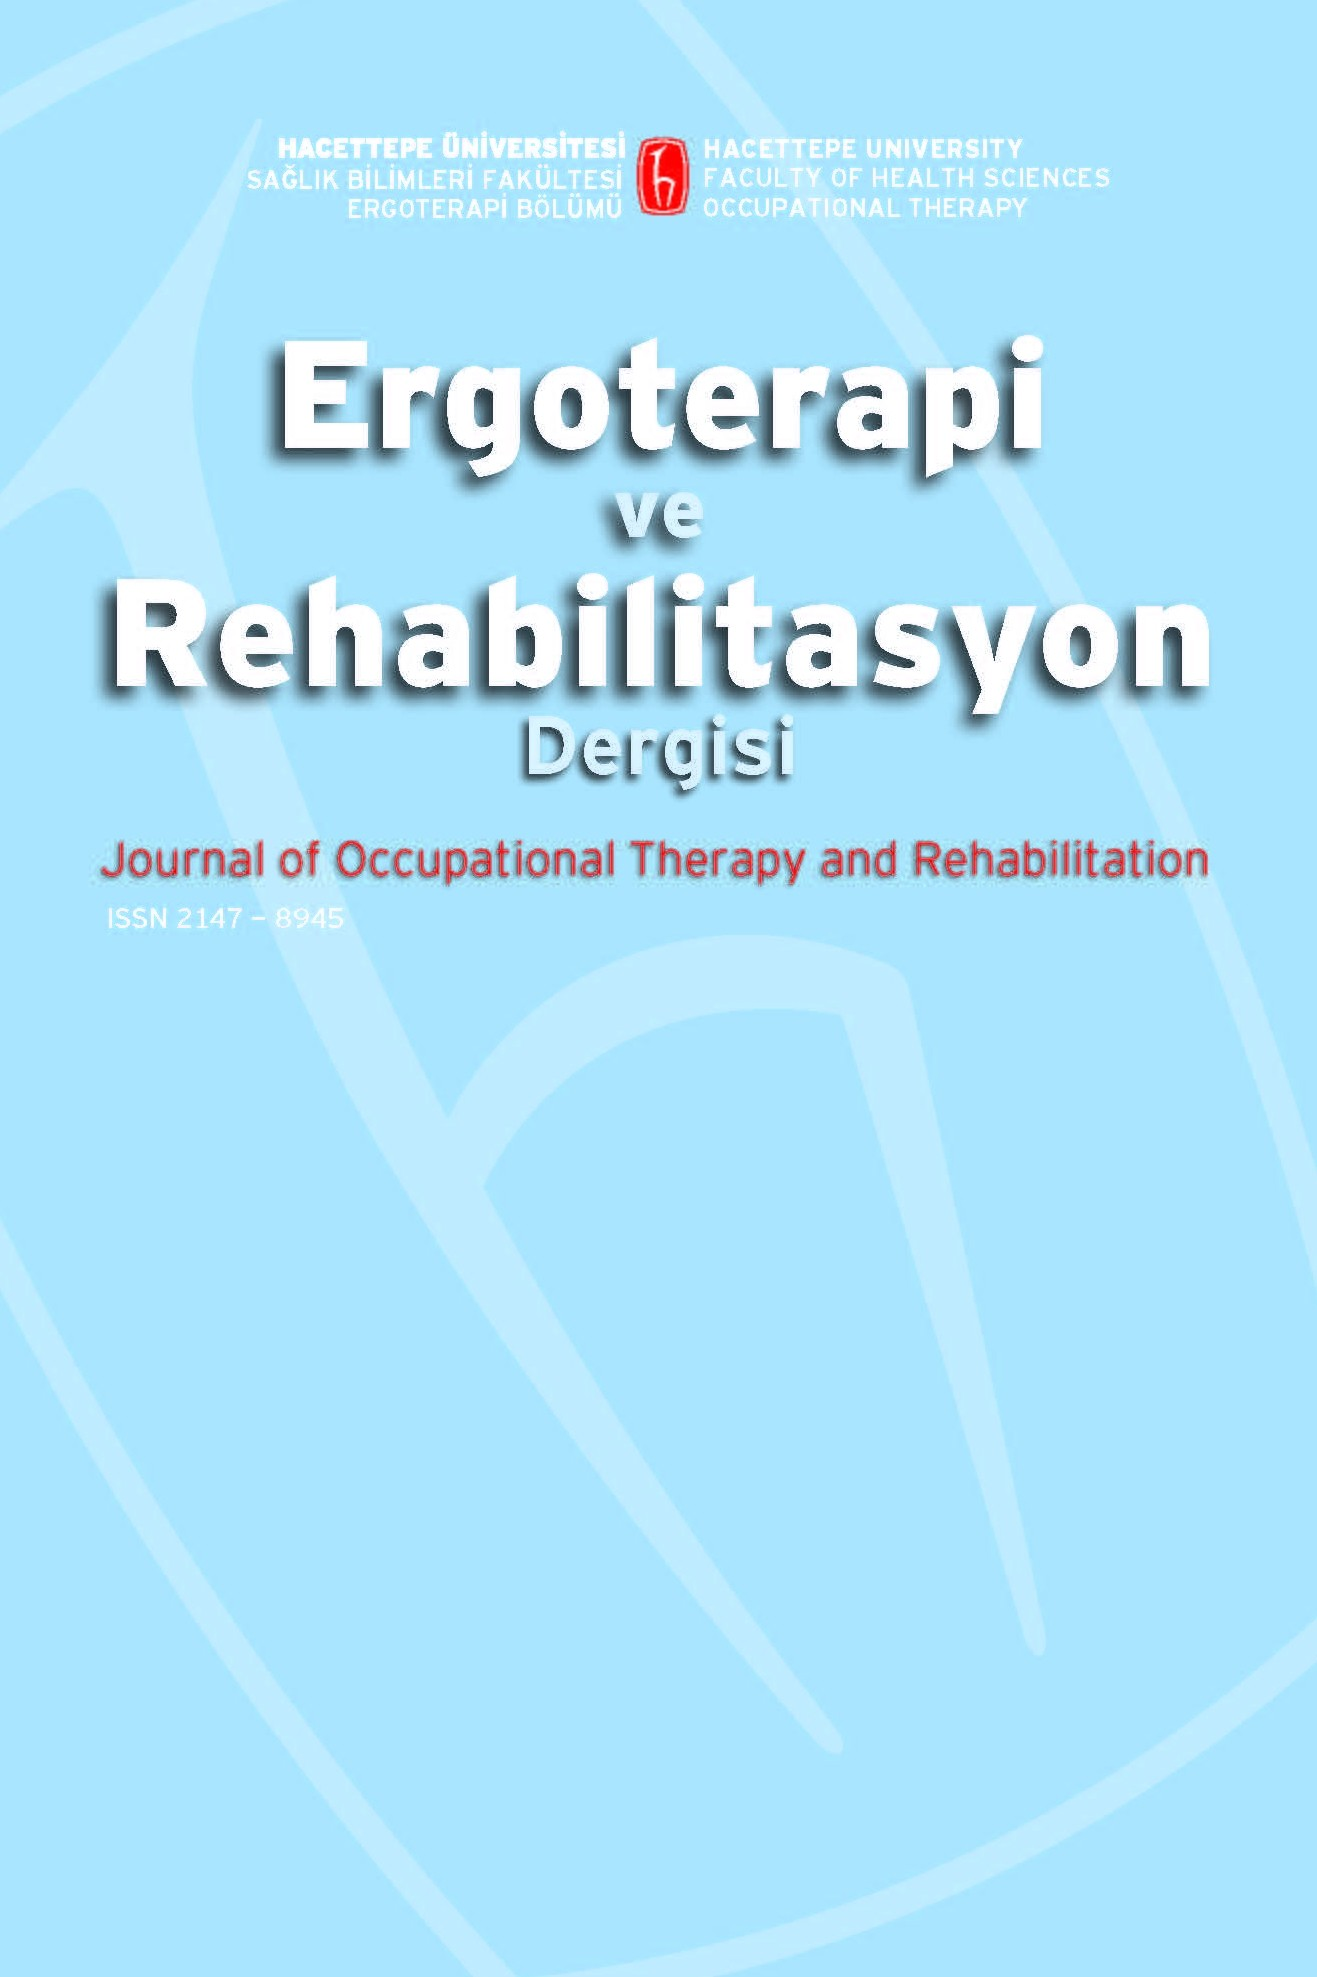 Journal of Occupational Therapy and Rehabilitation